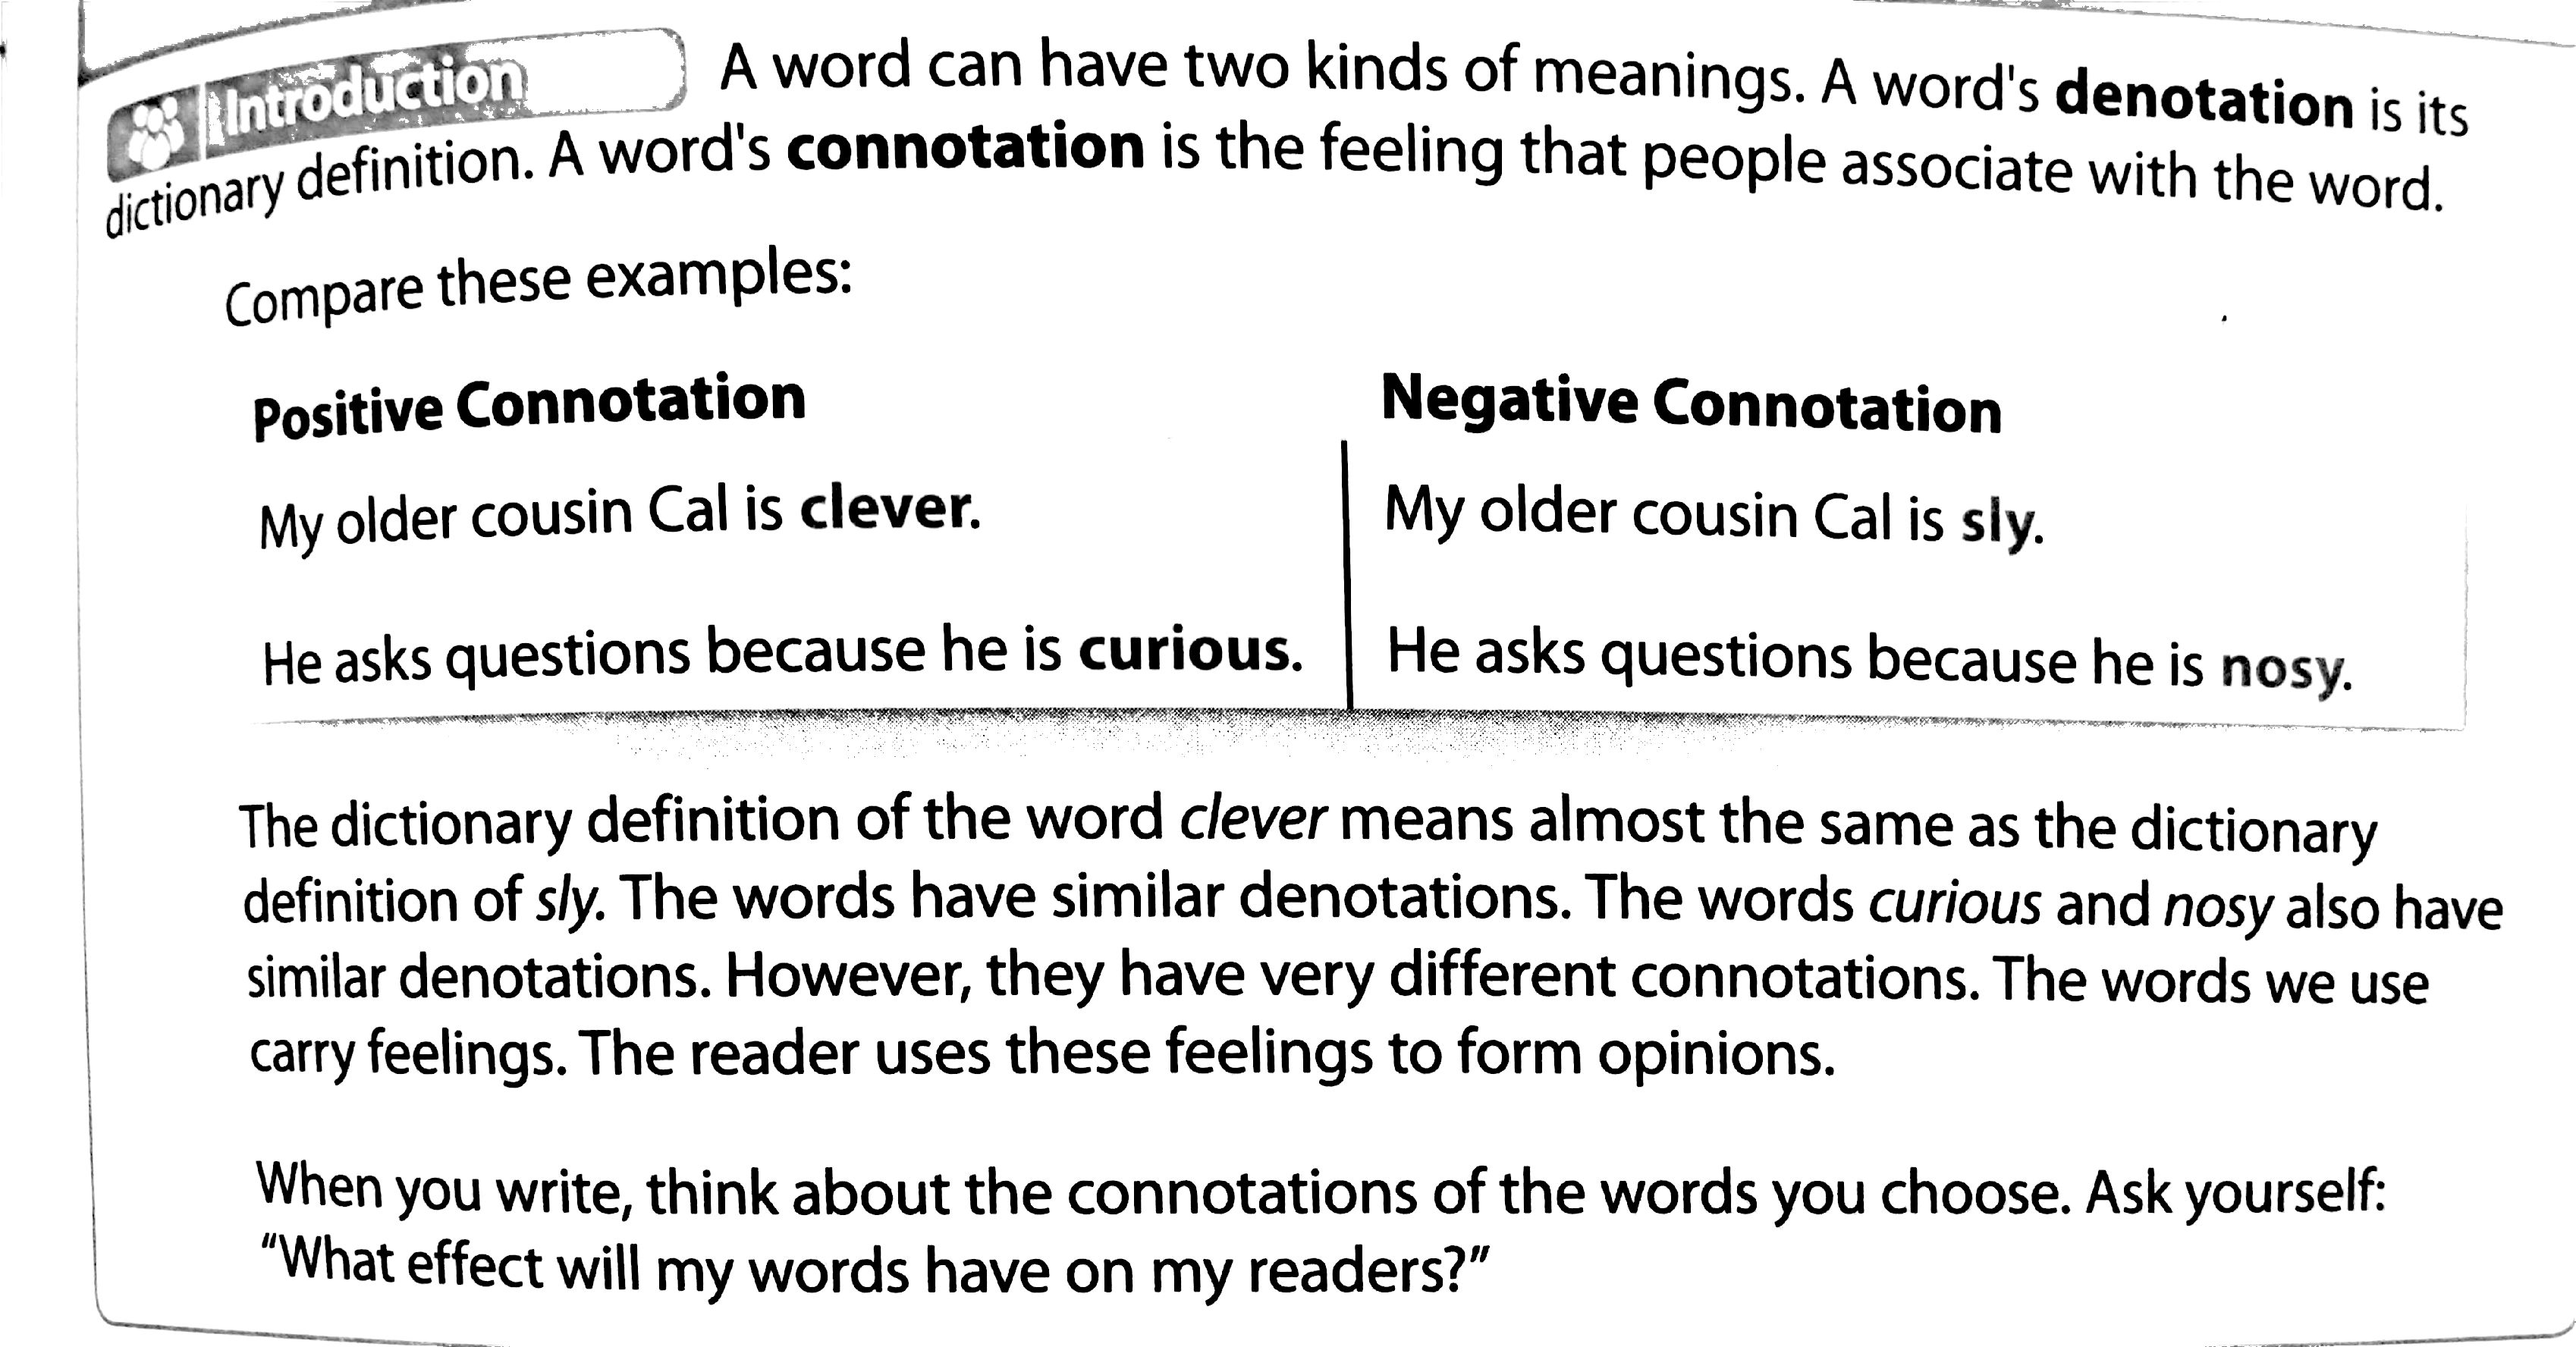 Worksheets Connotation Worksheet worksheet preview by lisa stienkemeyer blended worksheets wizer me denotation and connotation